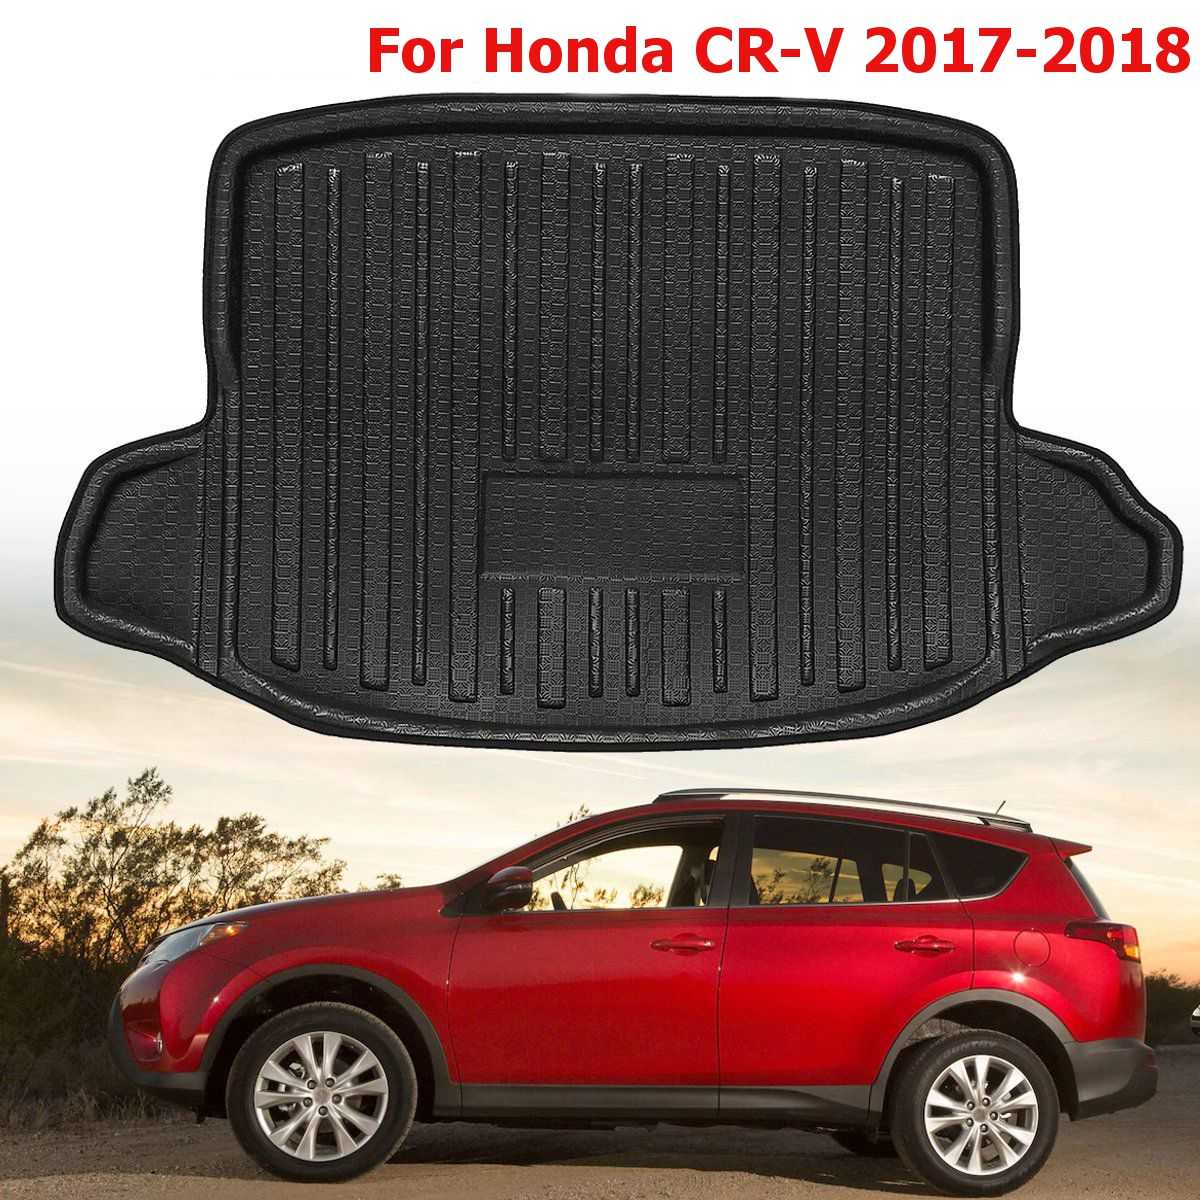 Supply Car Rear Trunk Boot Liner Cargo Mat Rear Trunk Floor Mat Tray Protector Carpet For Honda For Cr-v 2017 2018 Sufficient Supply Automobiles & Motorcycles